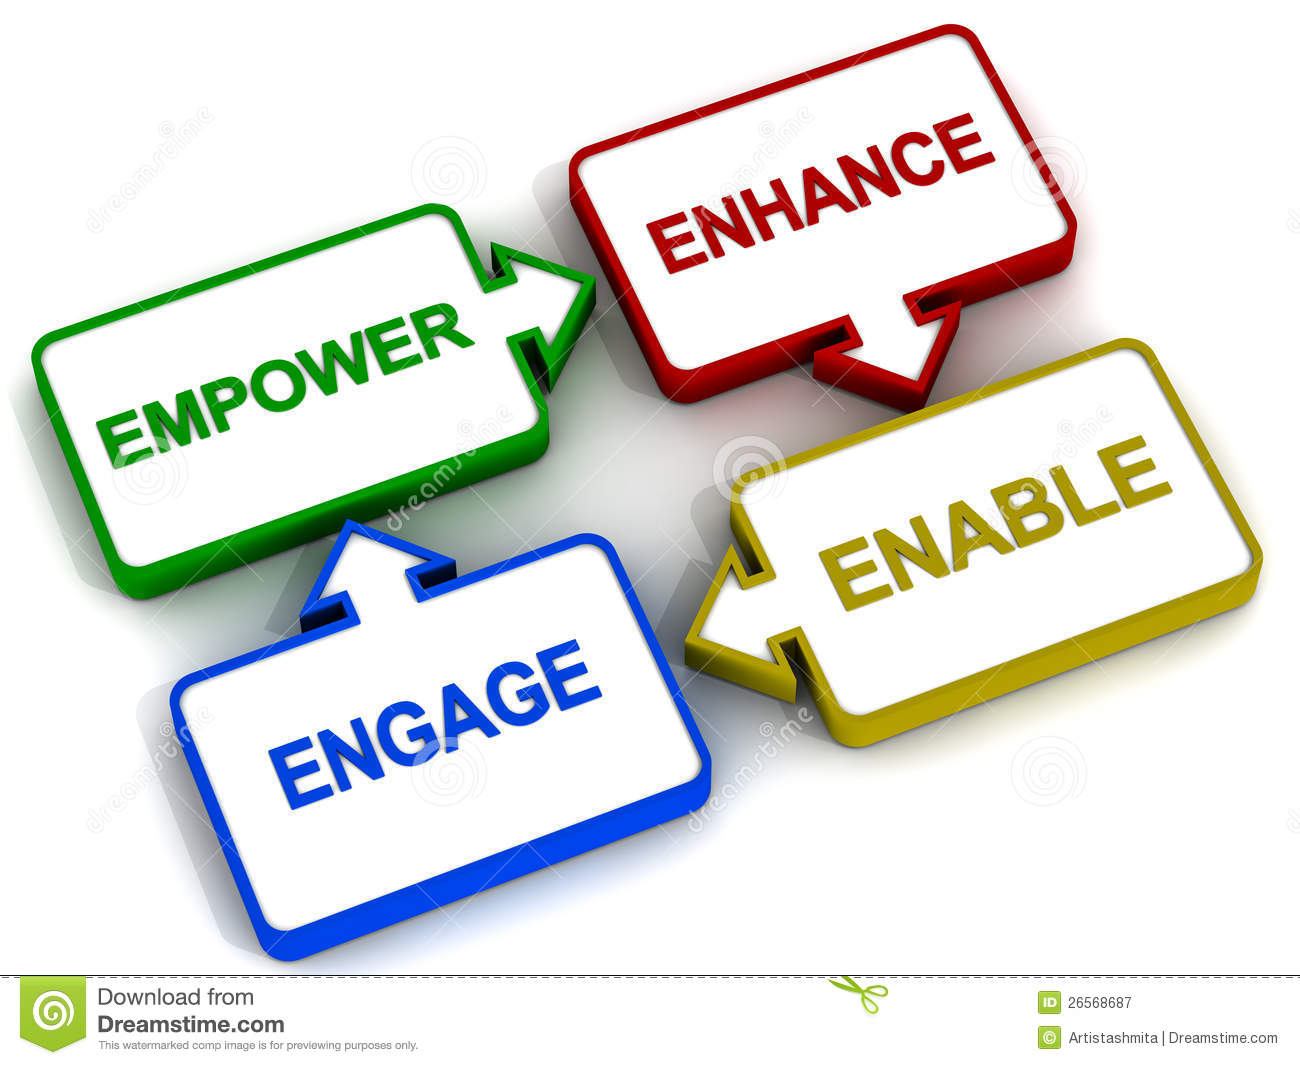 role of training and development in employee empowerment View resources to build your knowledge & expertise on employee empowerment and  employee empowerment requires: training in the skills  a support role at.